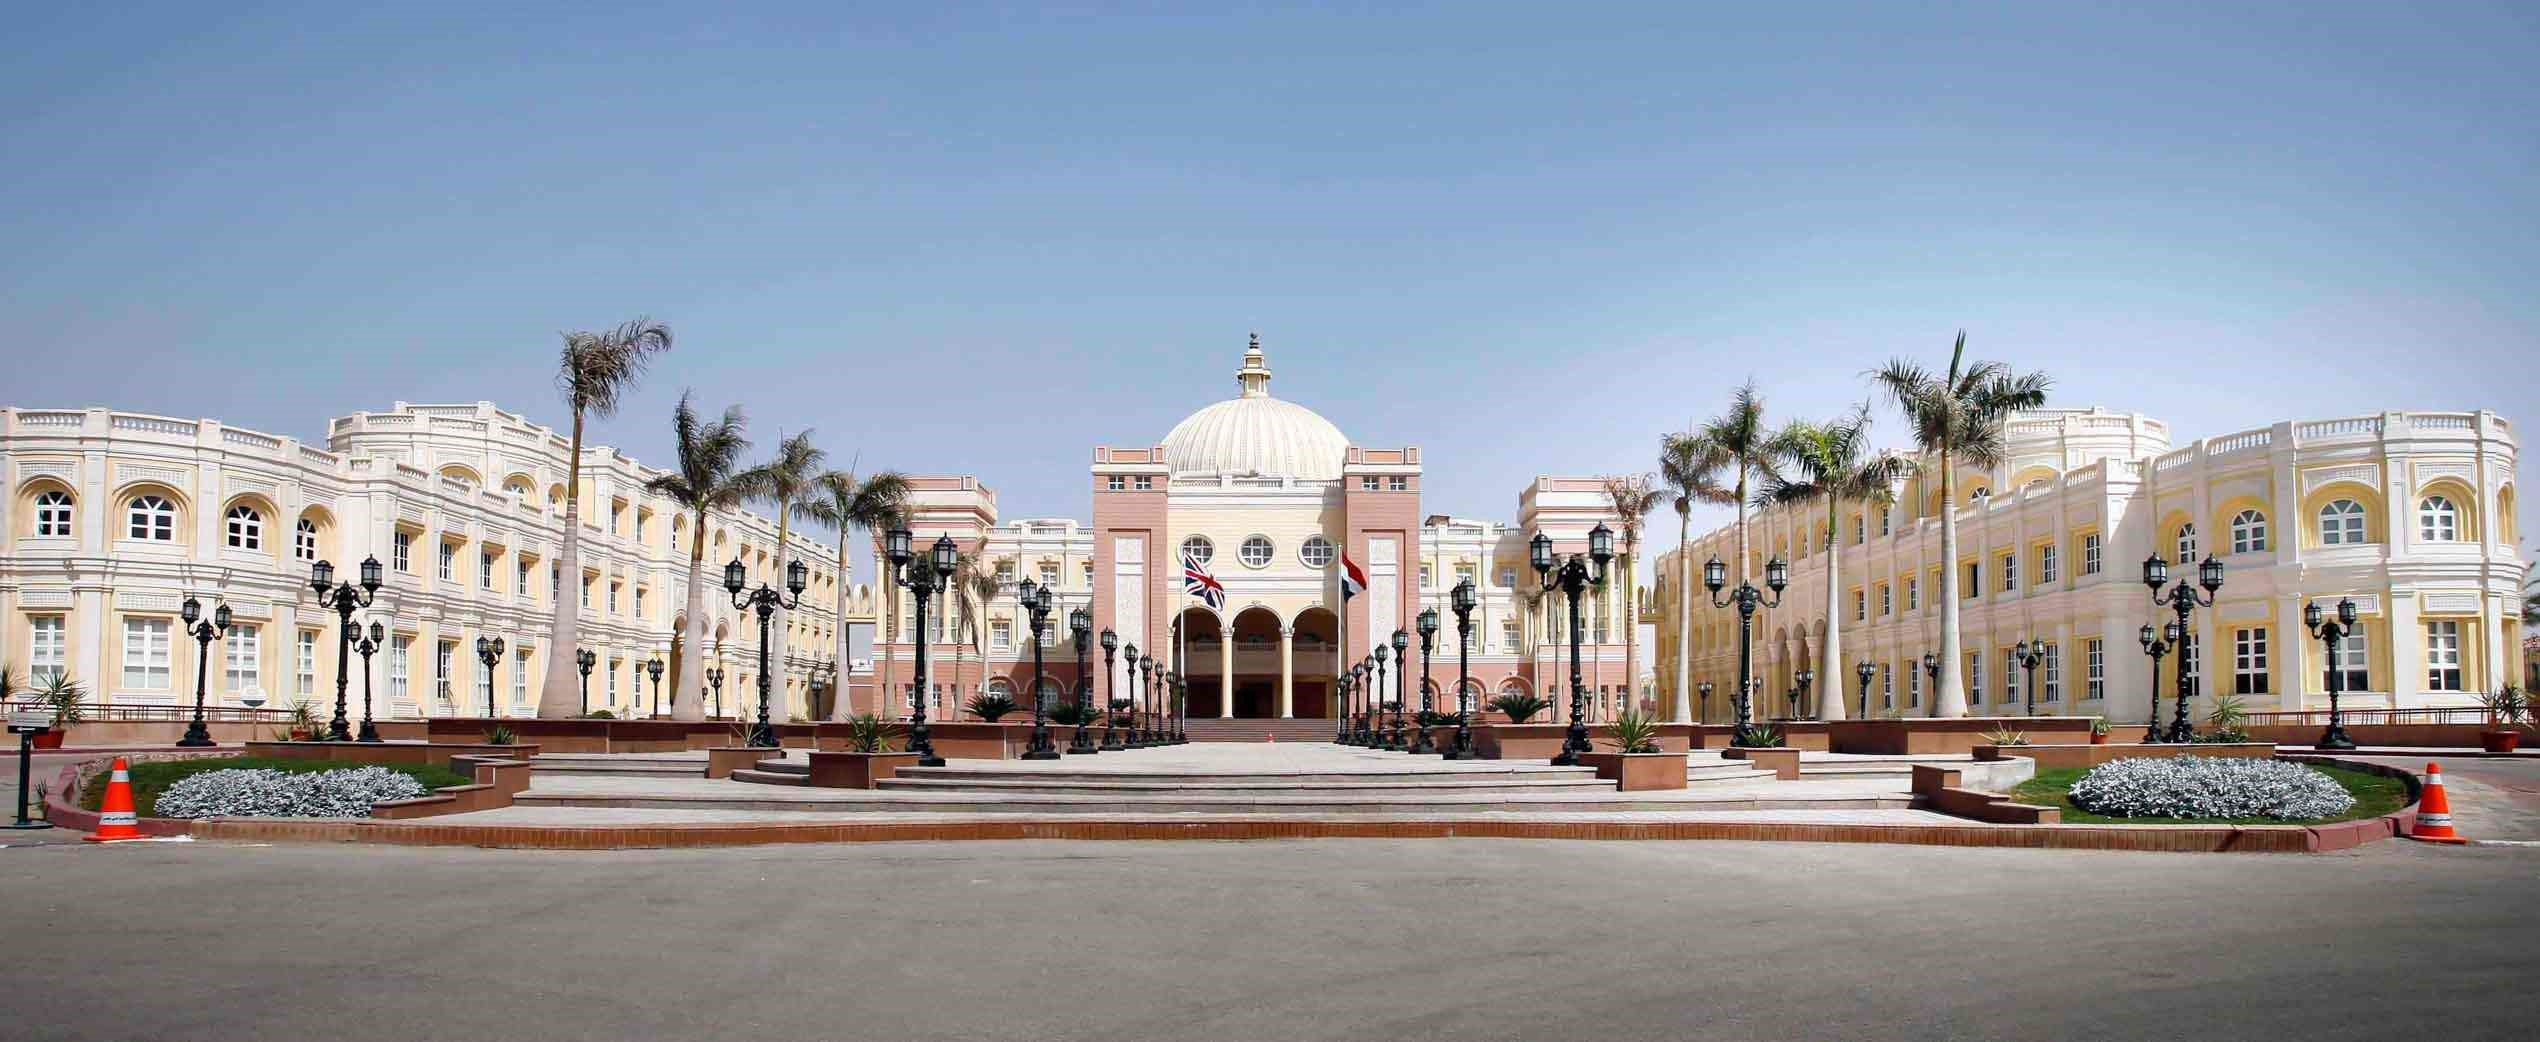 The British University in Egypt (BUE)